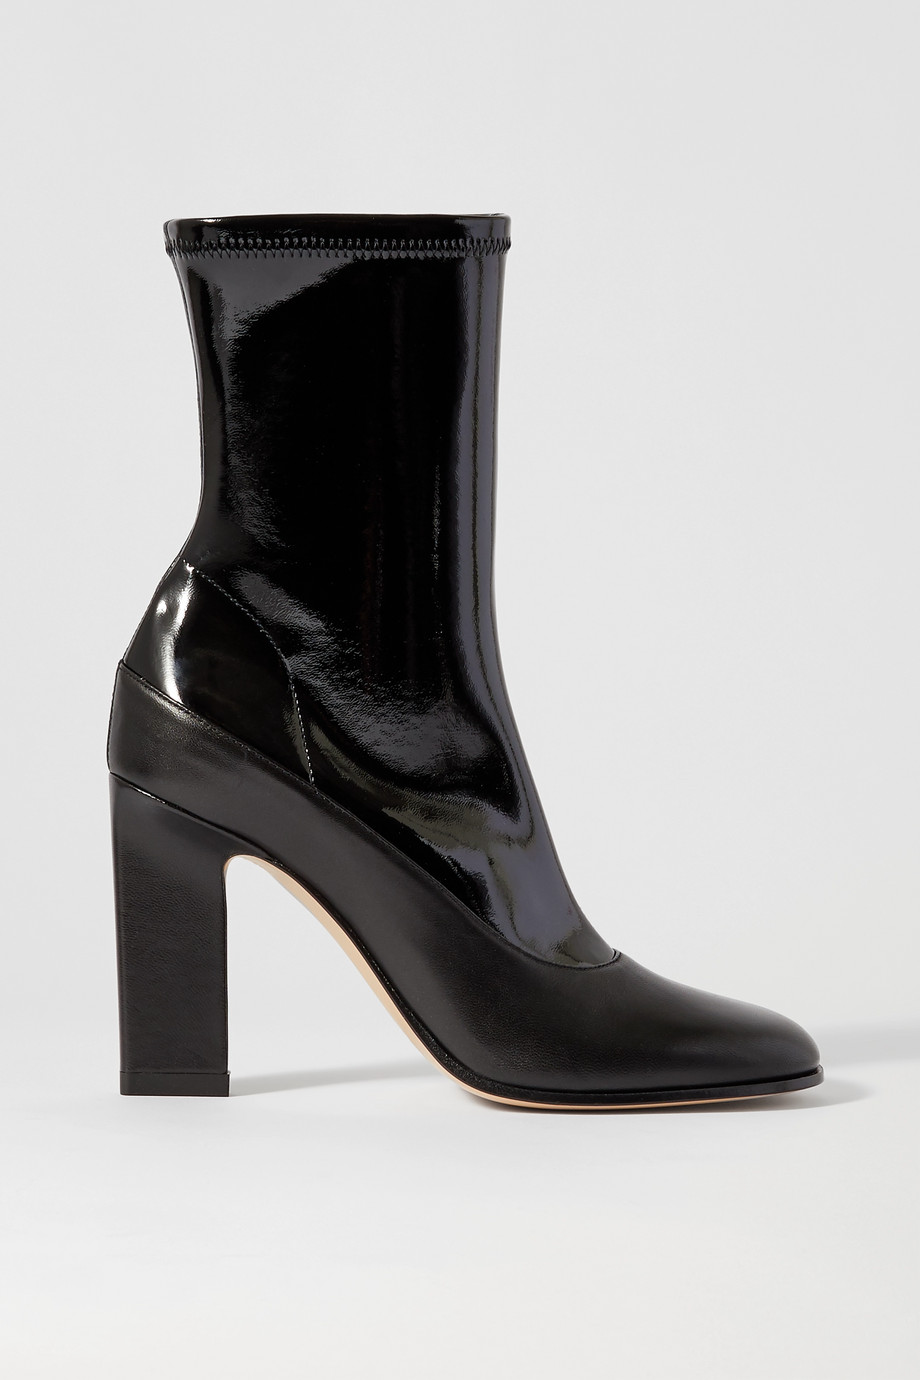 Wandler Lesly patent and matte-leather ankle boots